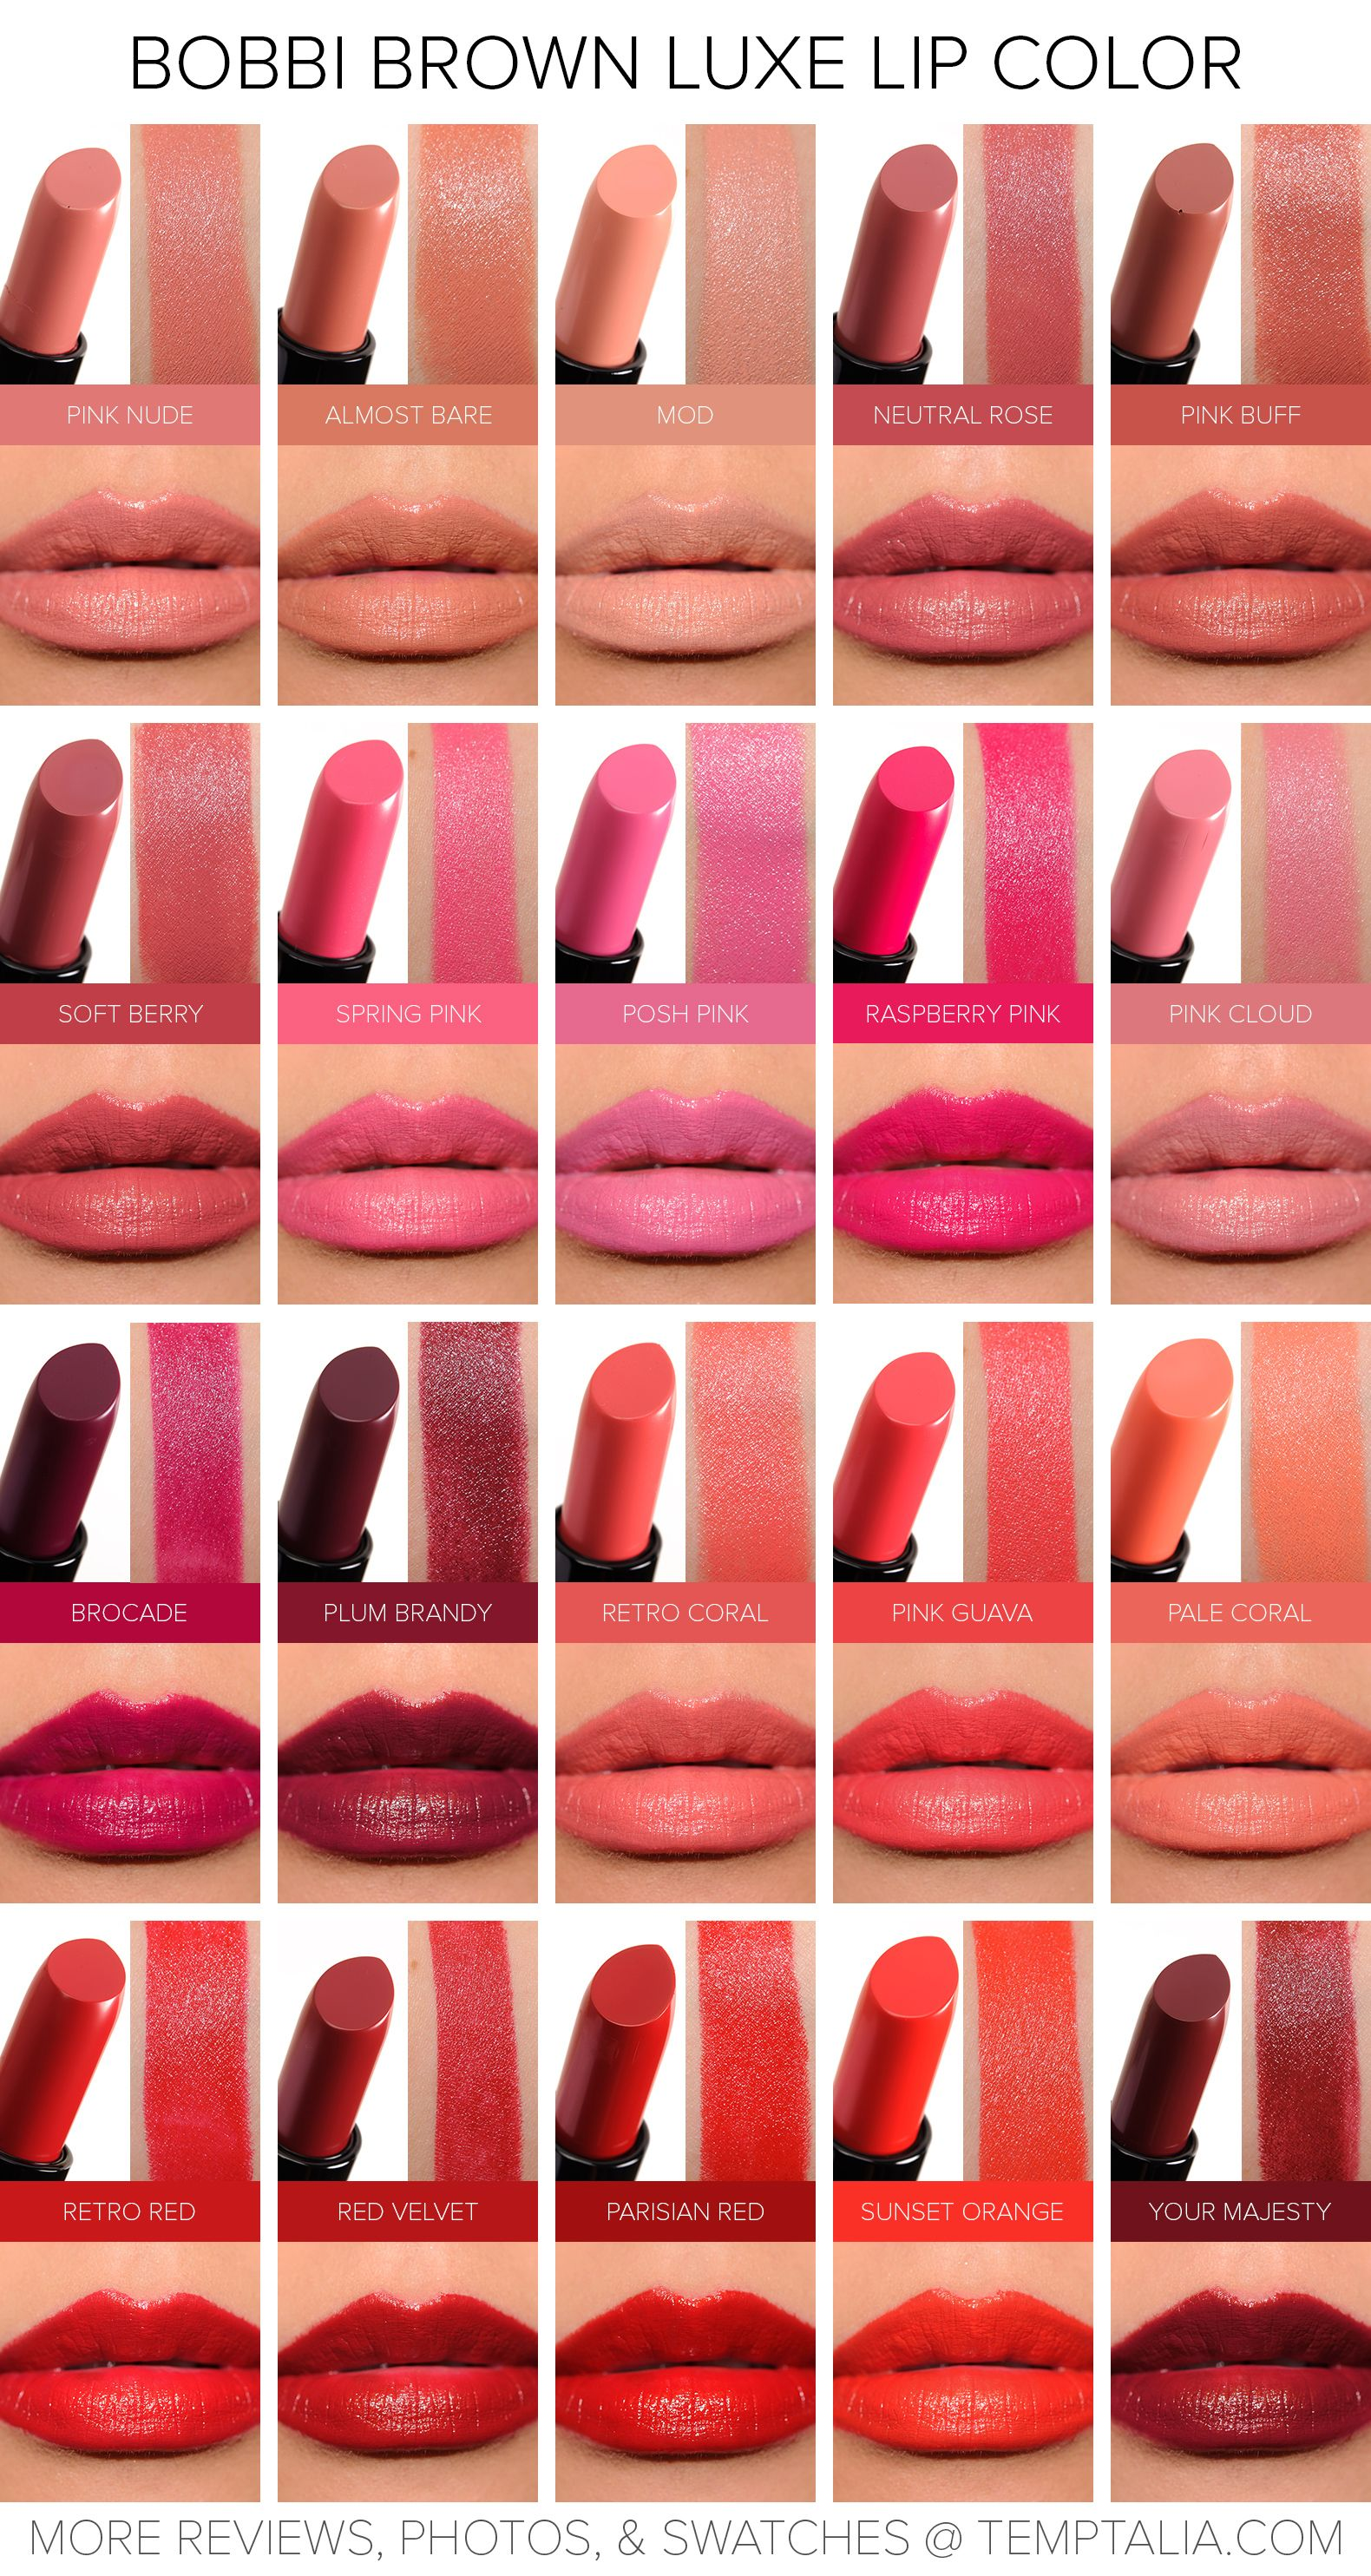 Sneak Peek Bobbi Brown Luxe Lip Color Photos Swatches Makeup